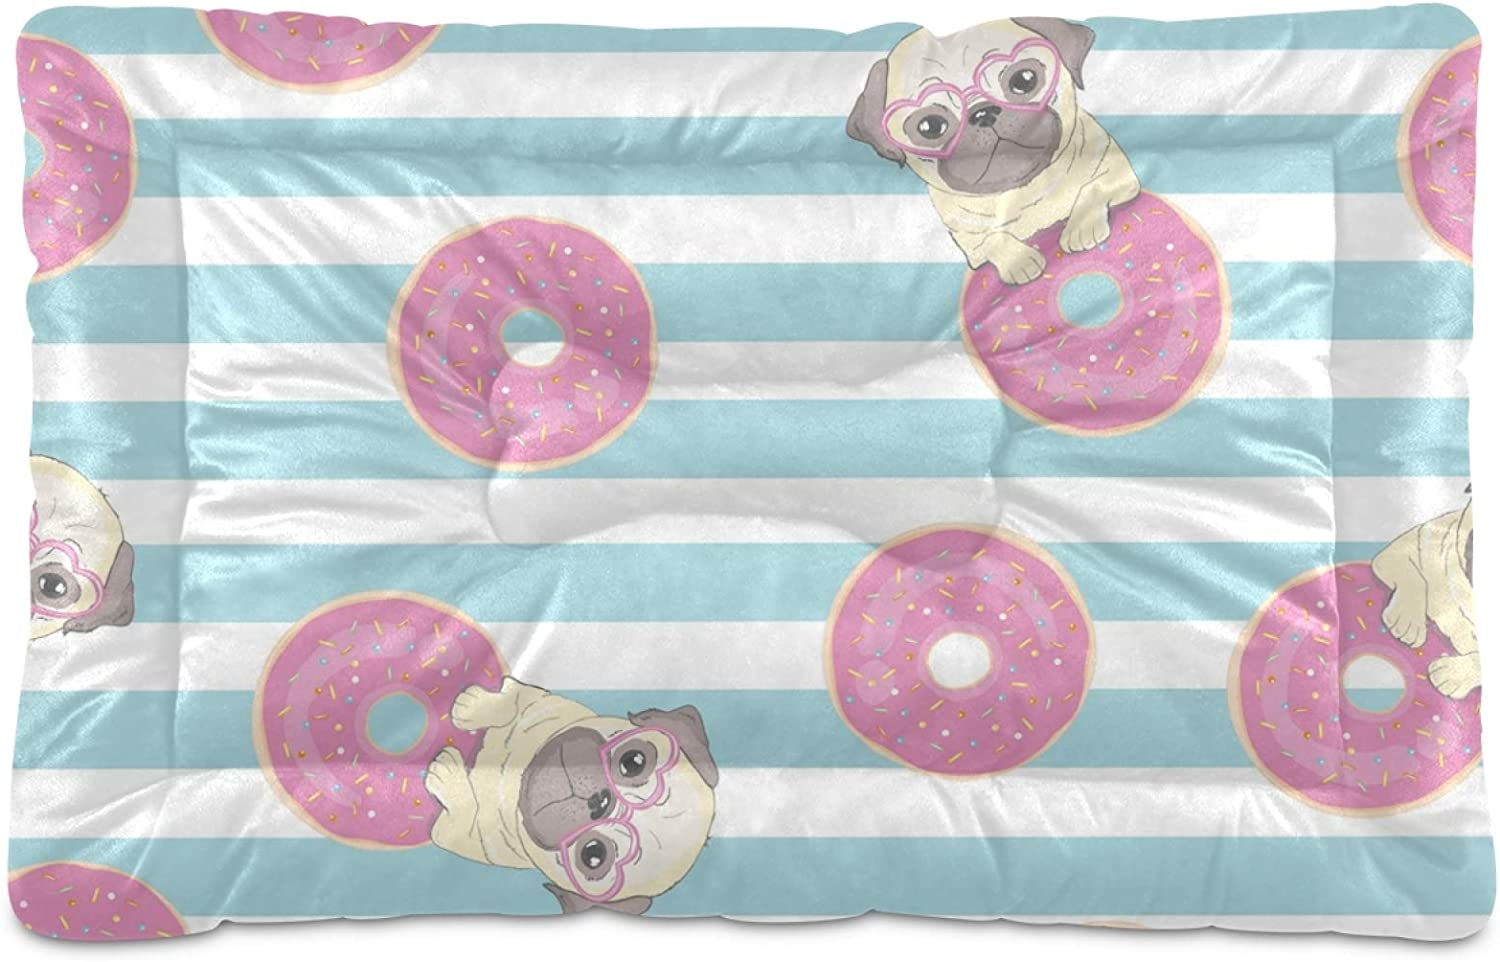 Dog Super sale period limited Bed Cute Donuts Crate Washable Larg Mattress Mat online shopping for